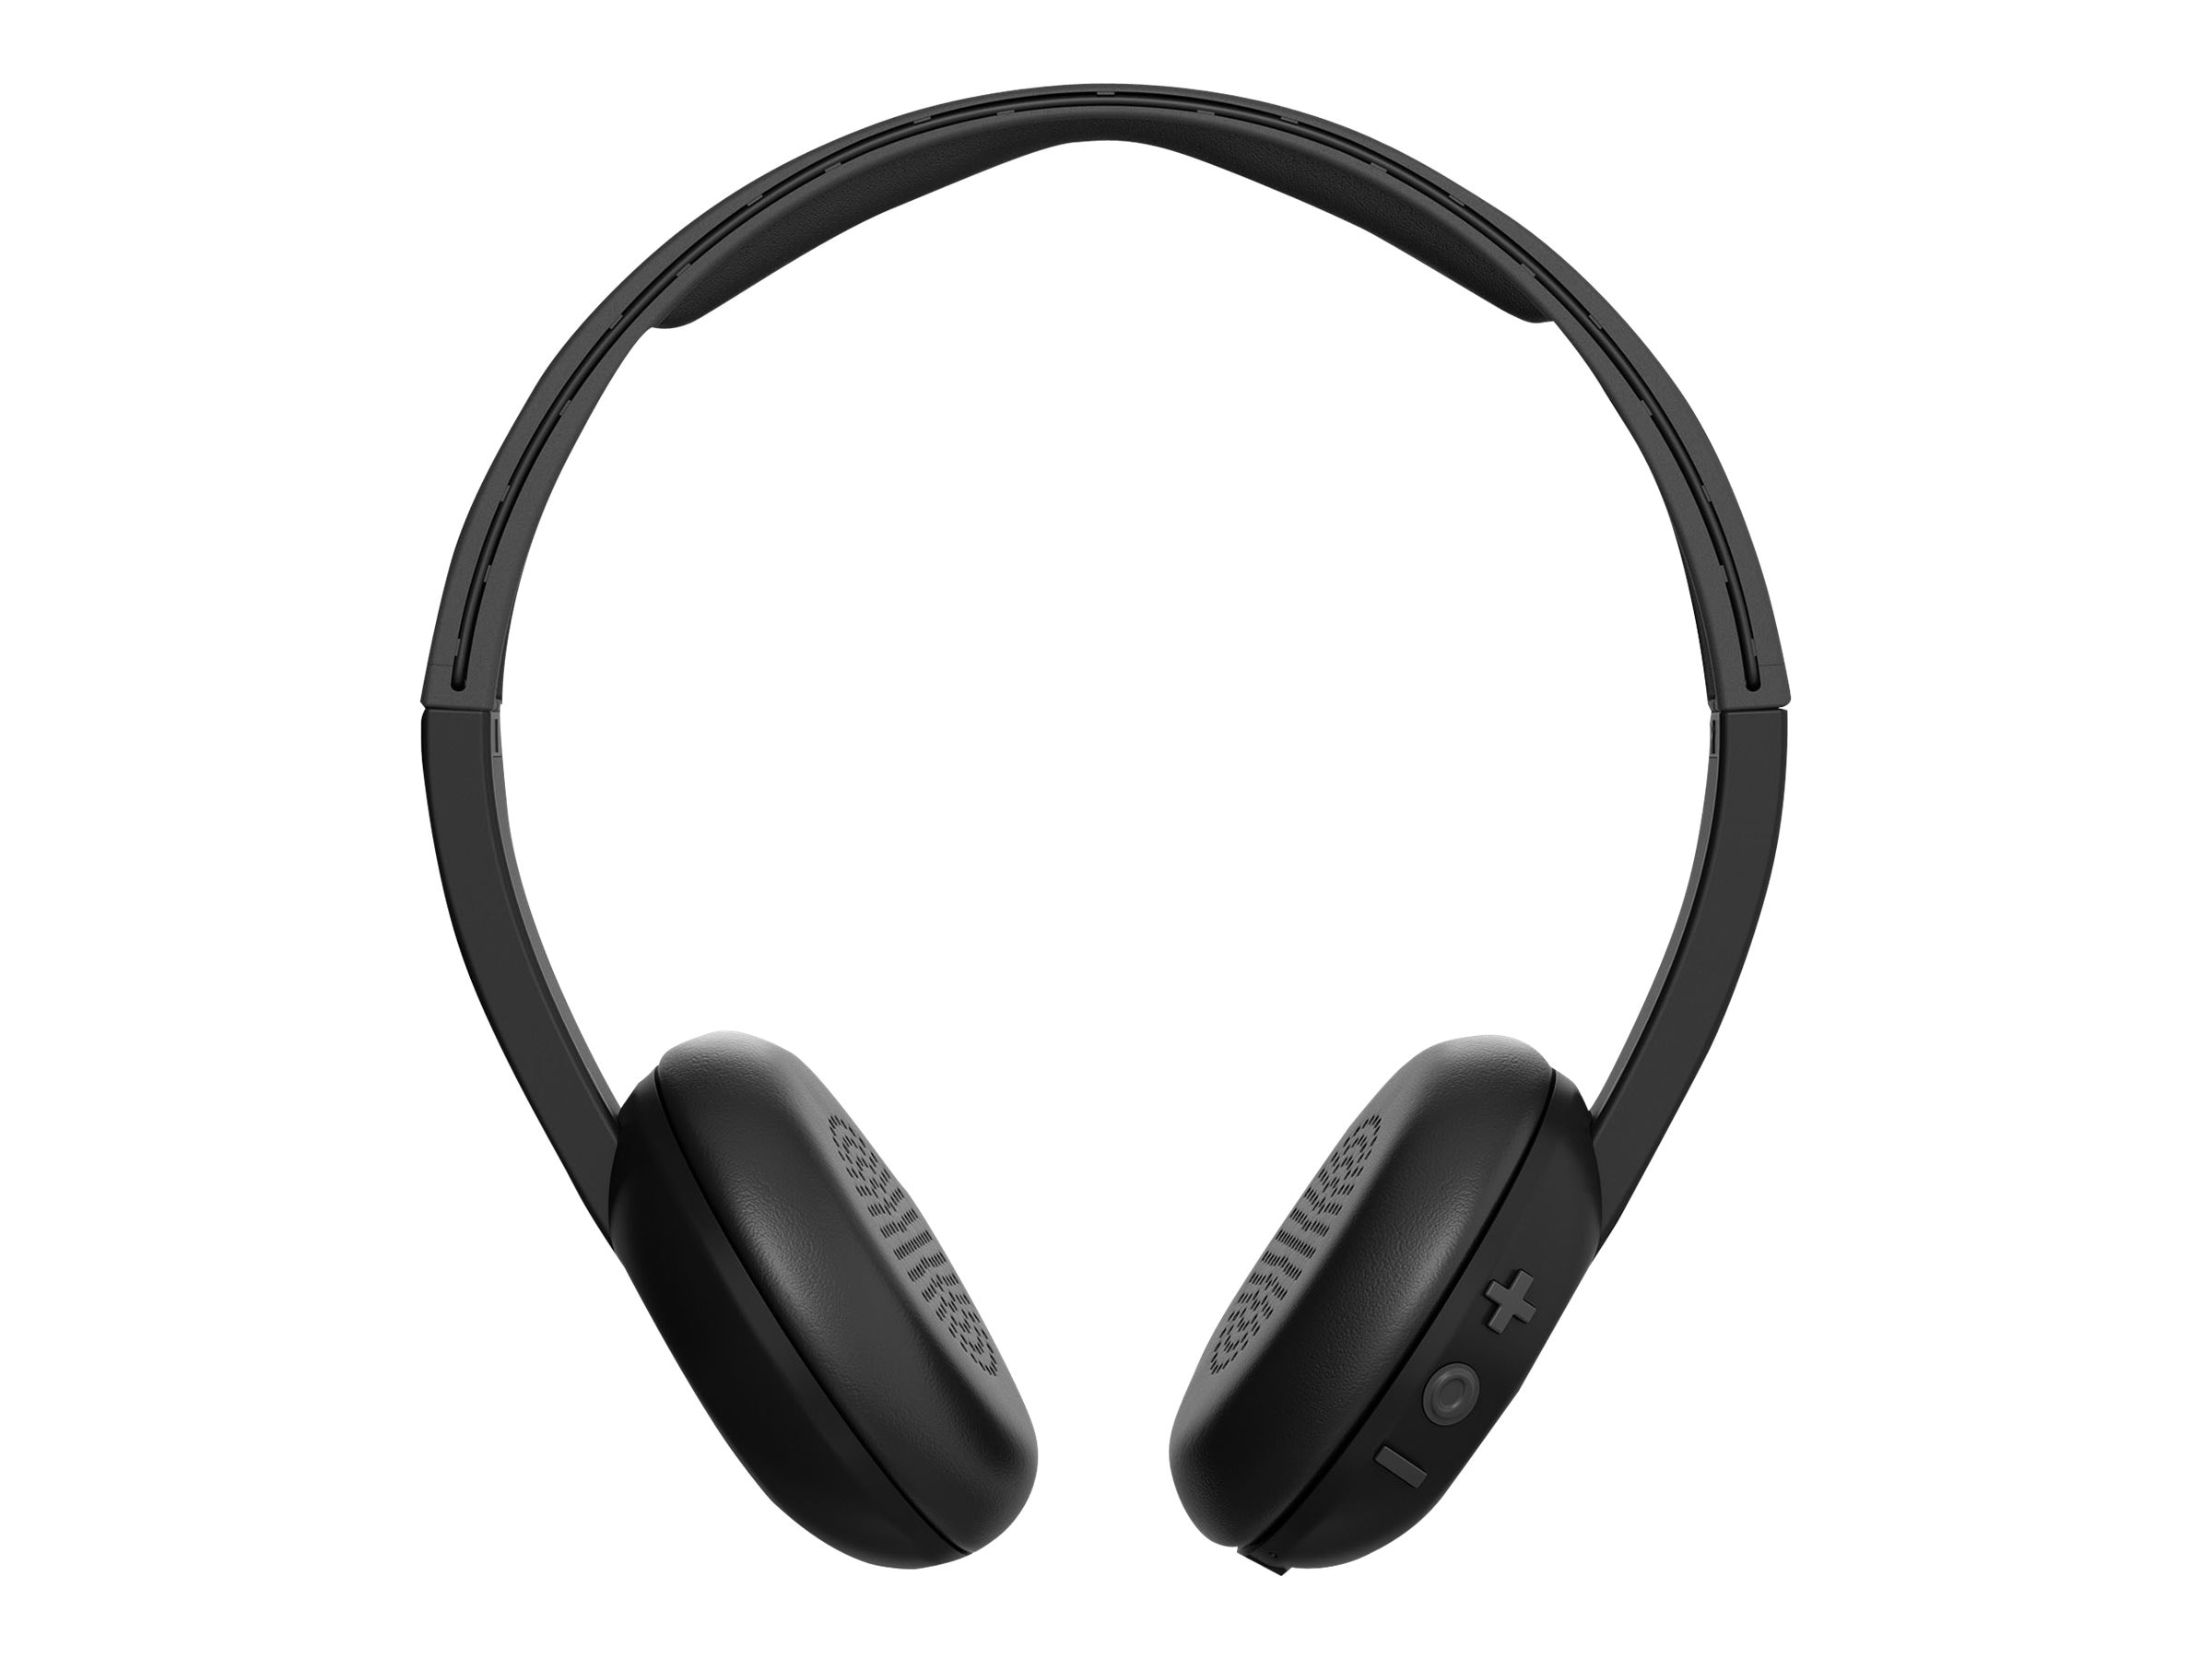 Skullcandy Uproar BT Headphones - Black Gray Gray, S5URHW-509